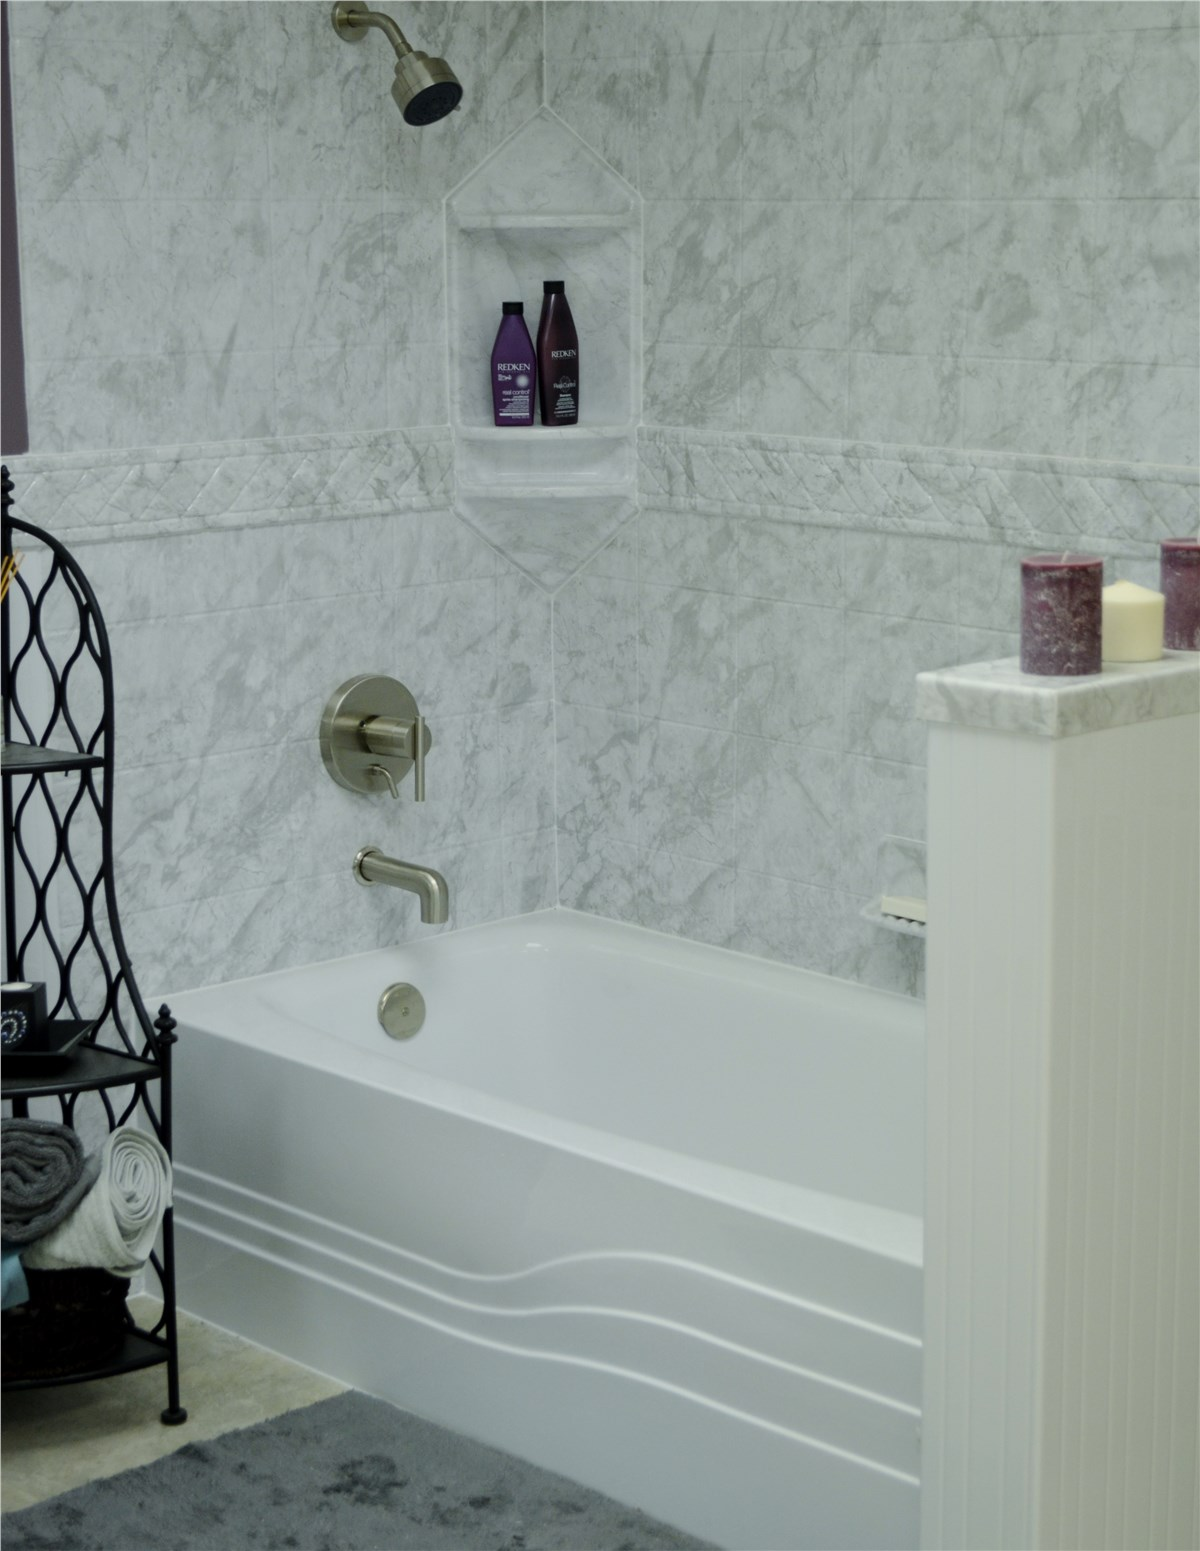 New Bathtubs | North Texas New Bath Tub | Luxury Bath of Texoma